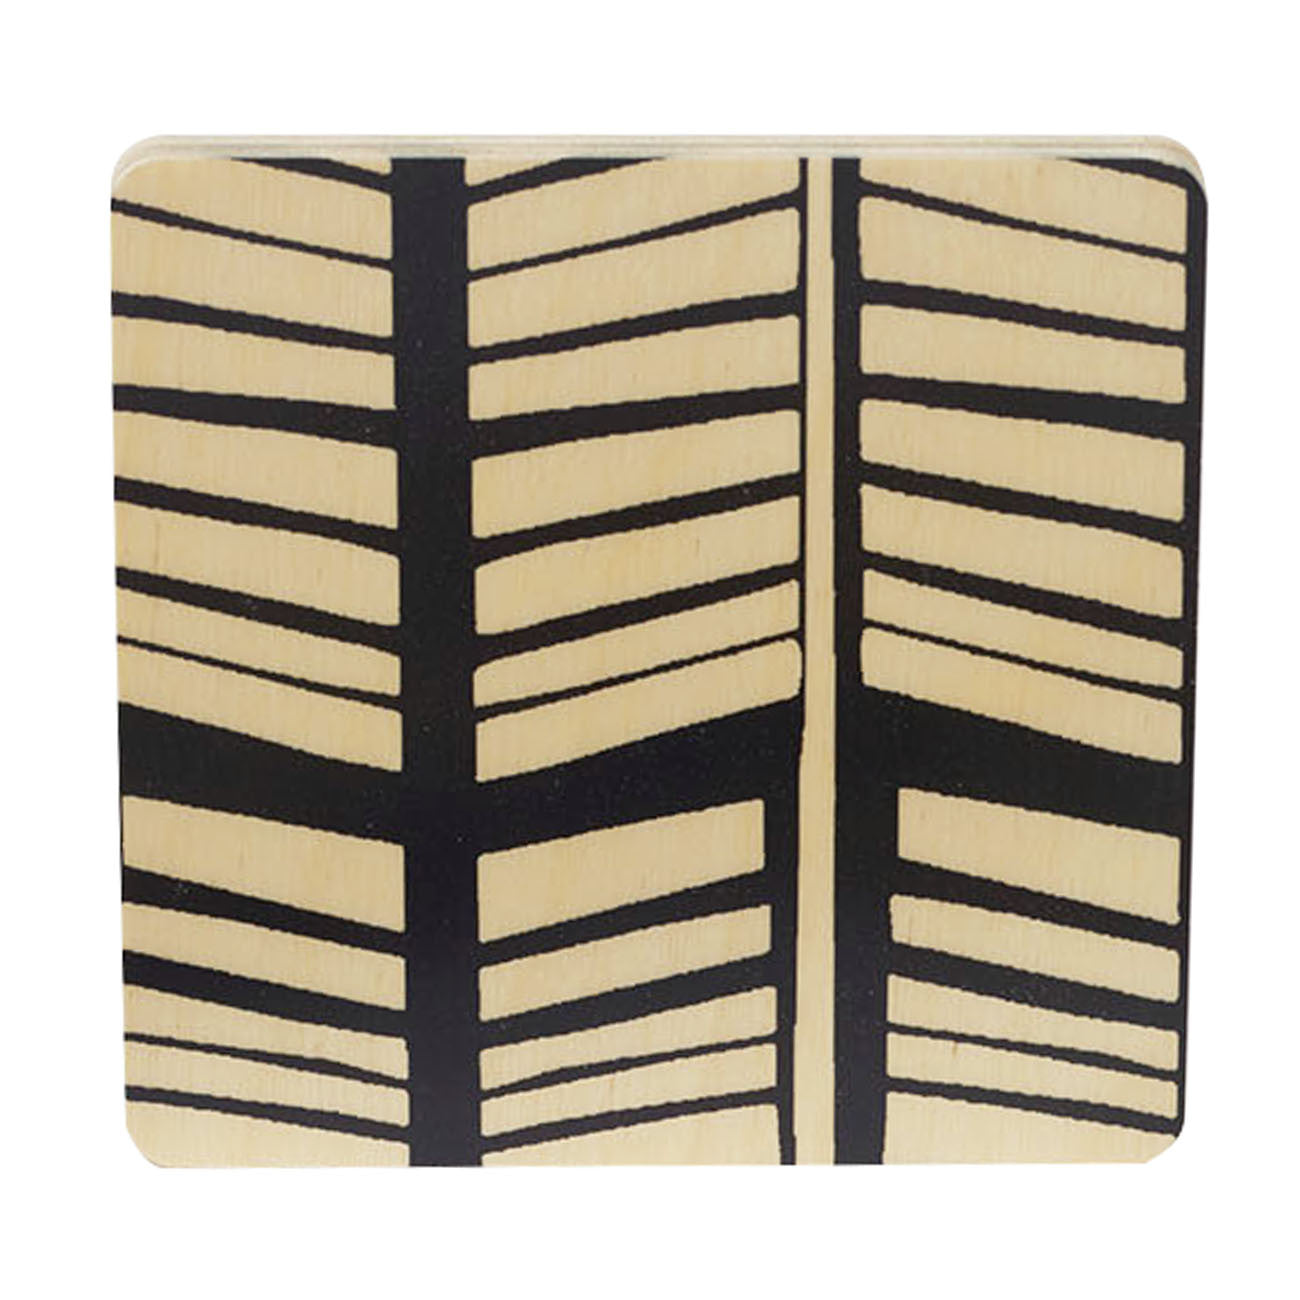 rampli oversize coasters, set of four